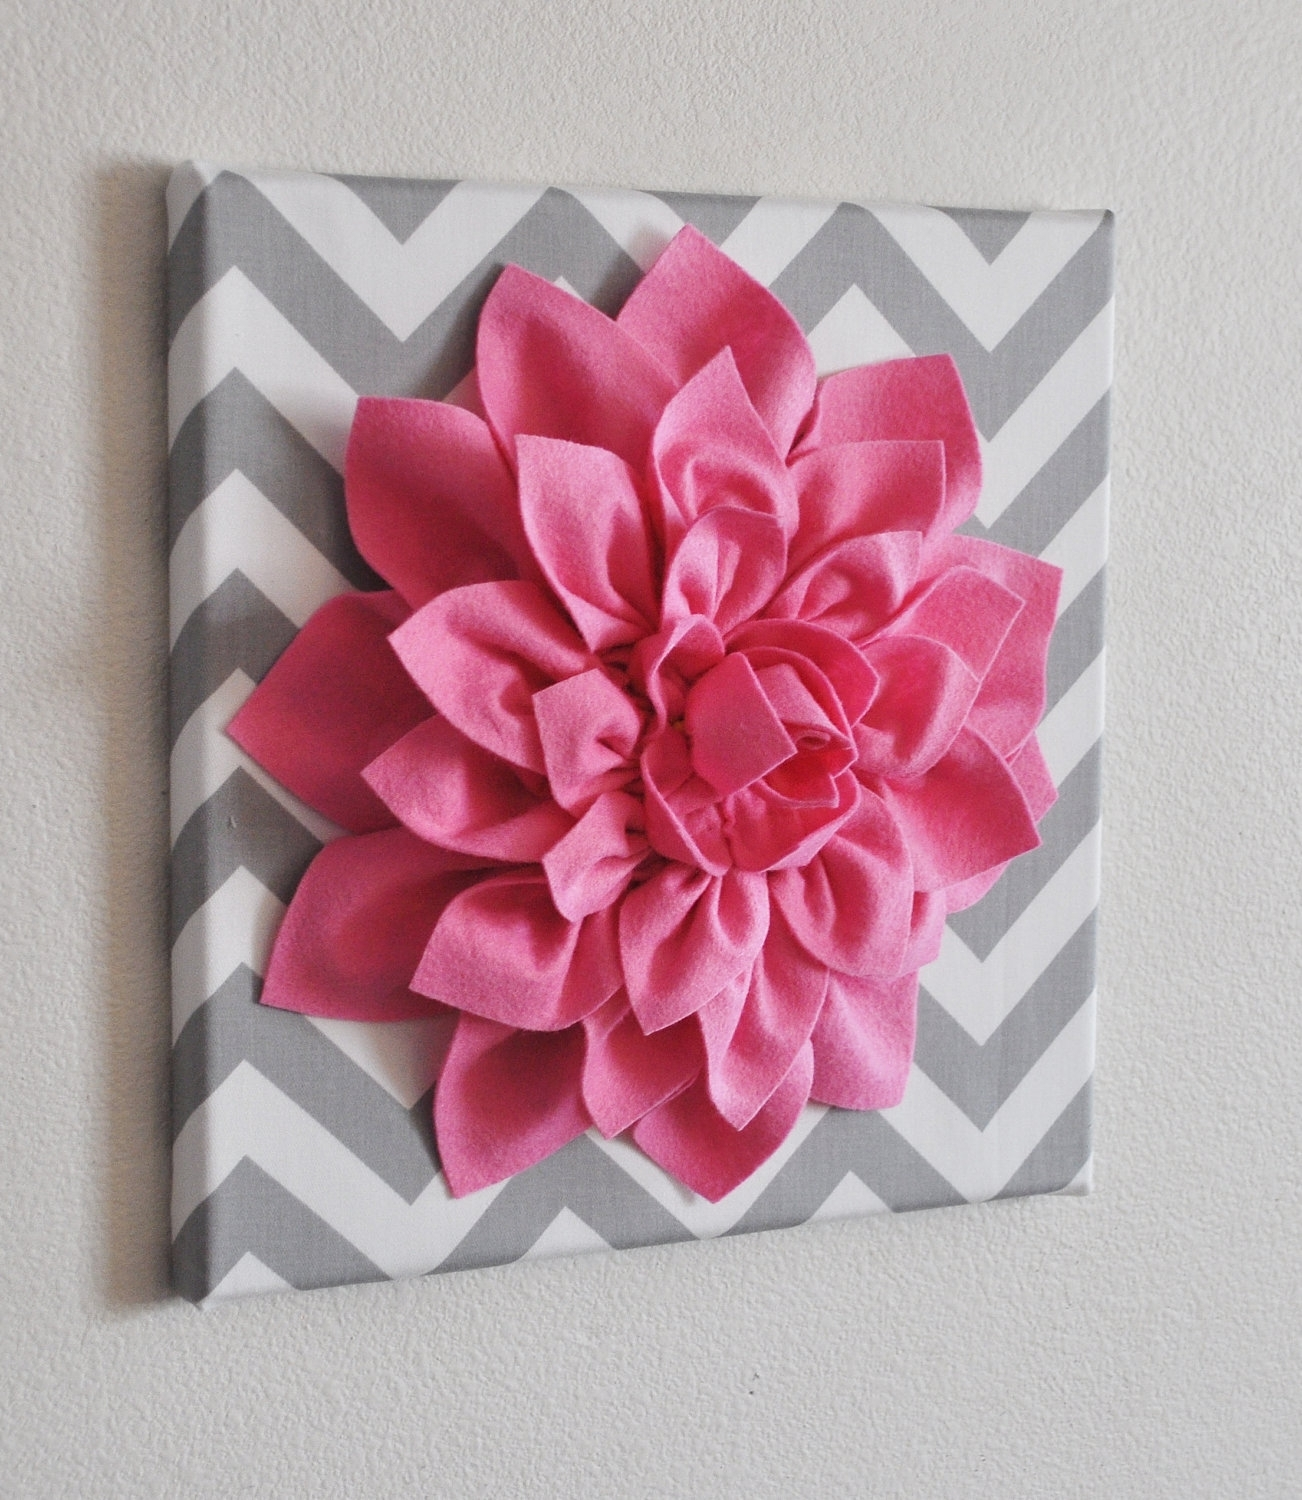 Bright Pink Wall Flower  Bright Pink Dahlia On Gray And White Pertaining To 2017 Fabric Flower Wall Art (View 5 of 15)